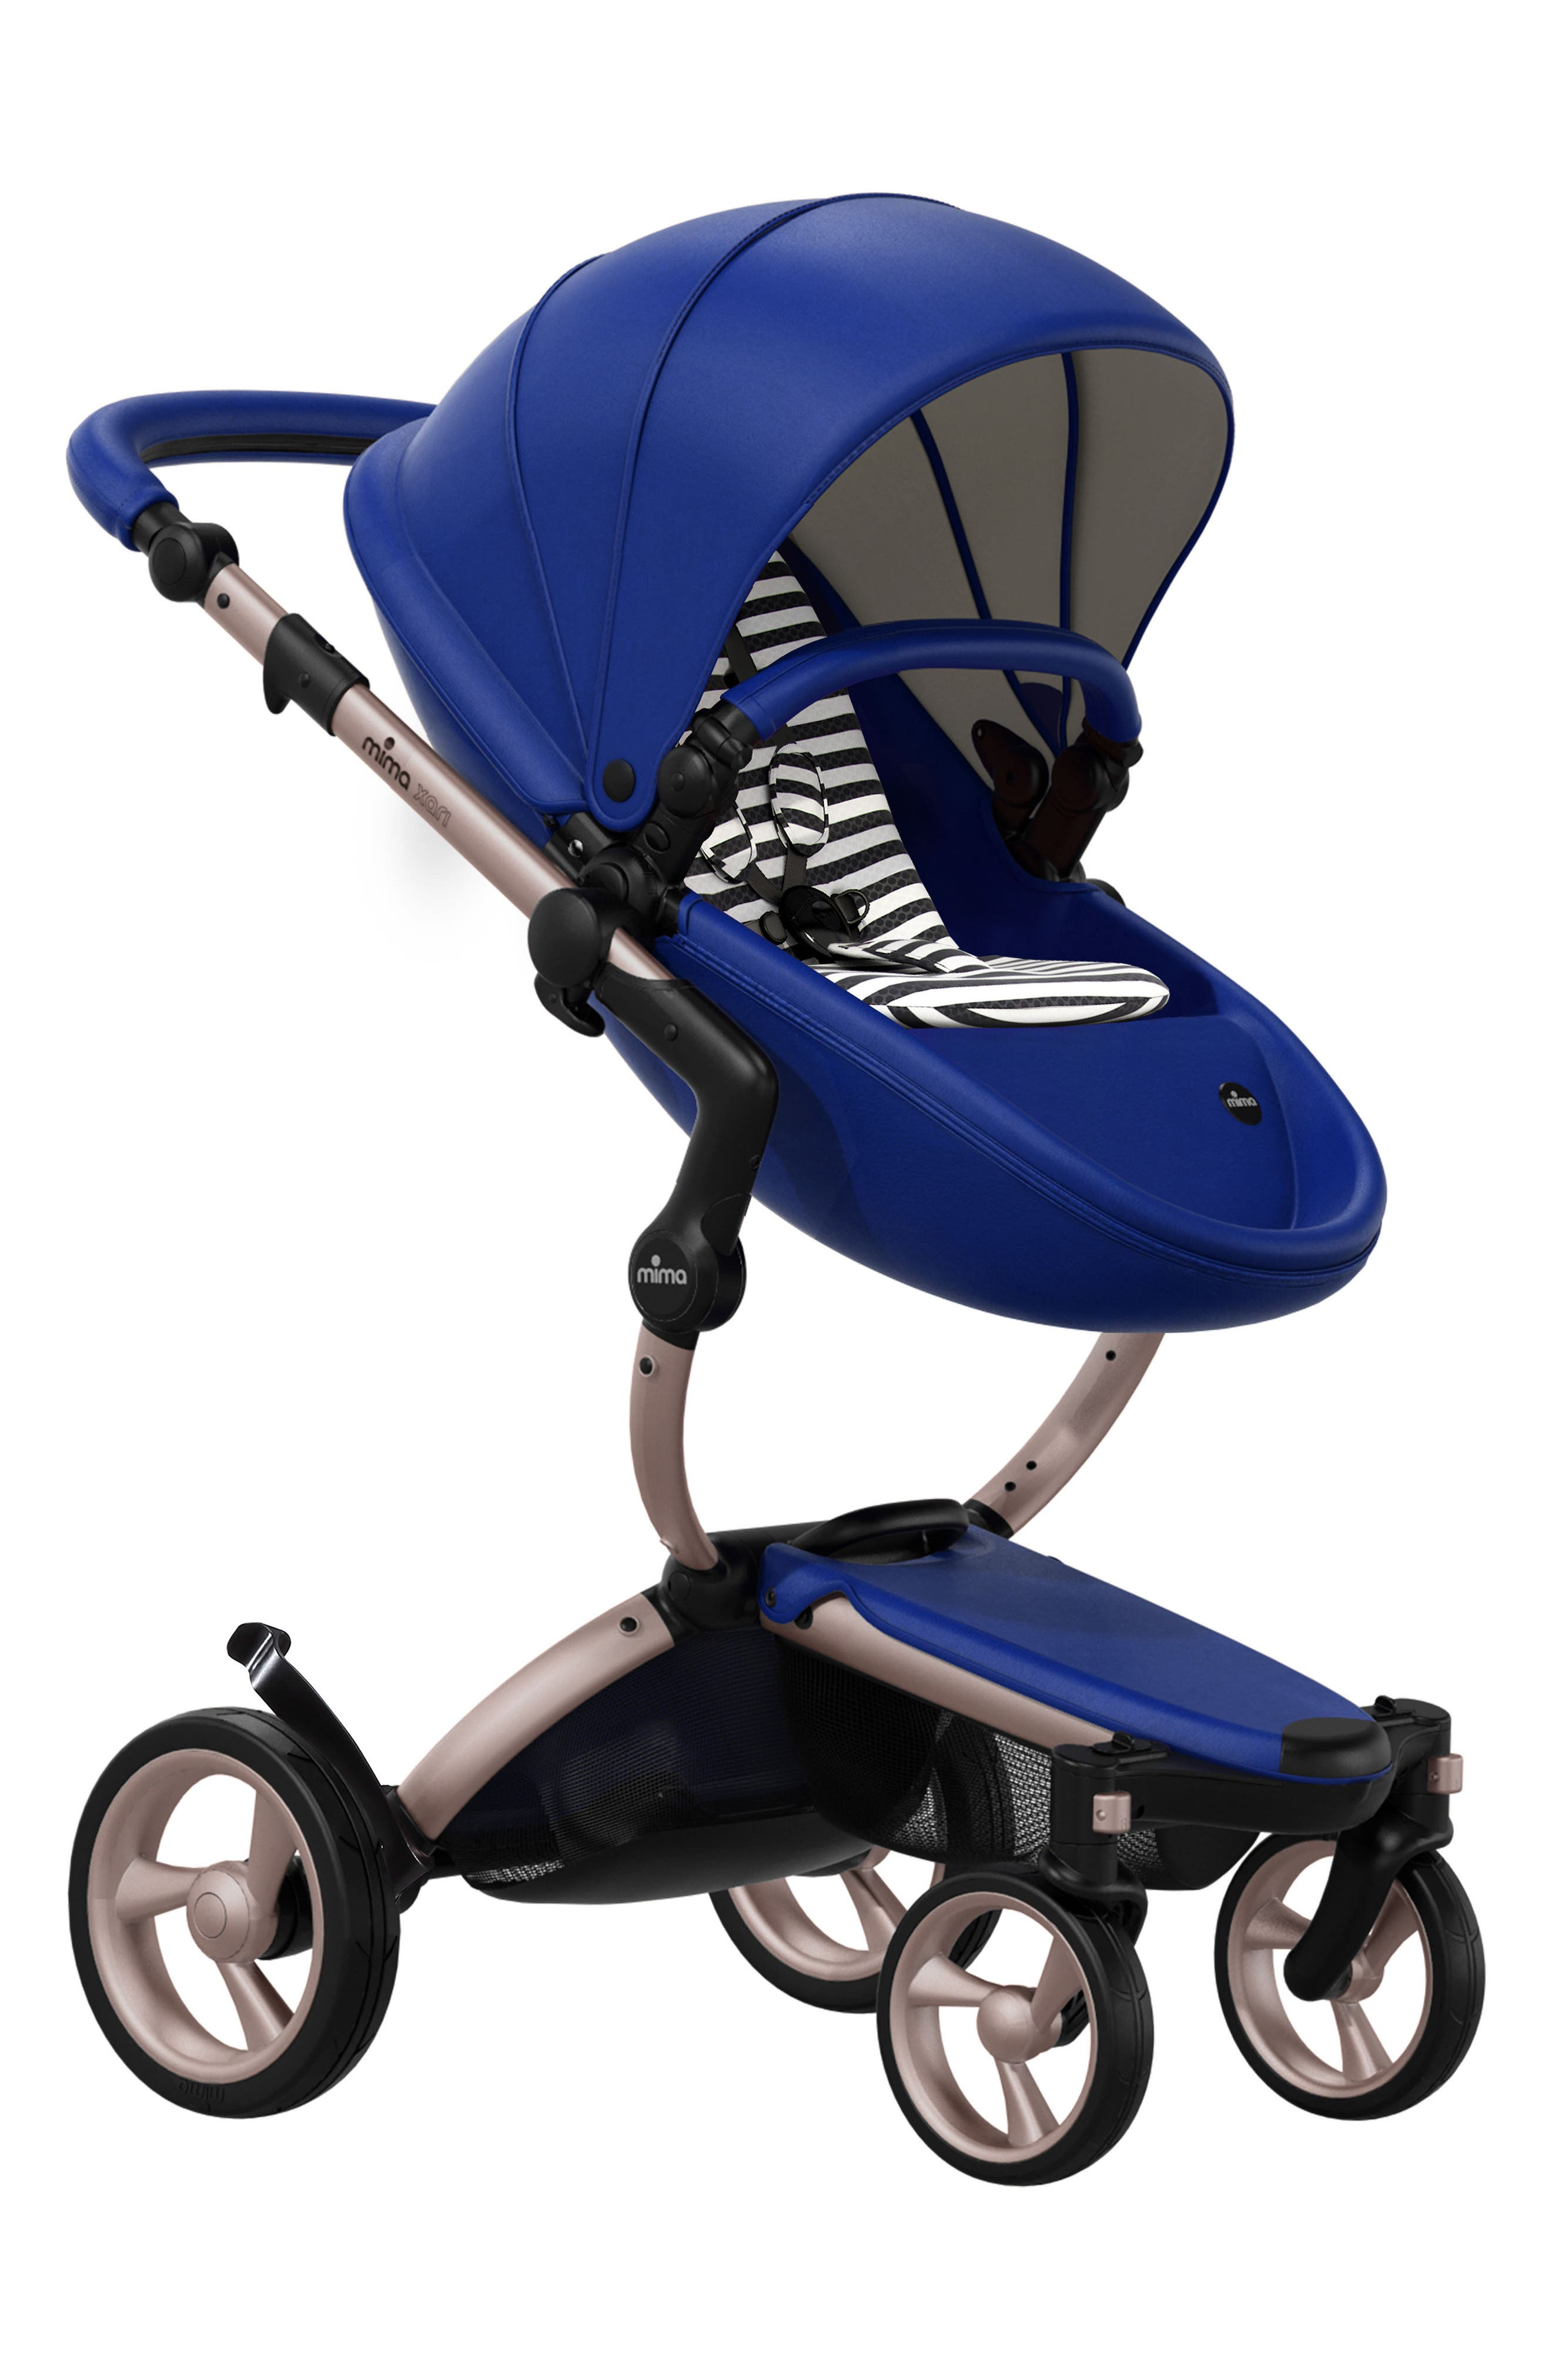 Main Image - Mima Xari Rose Gold Chassis Stroller with Reversible Reclining Seat & Carrycot